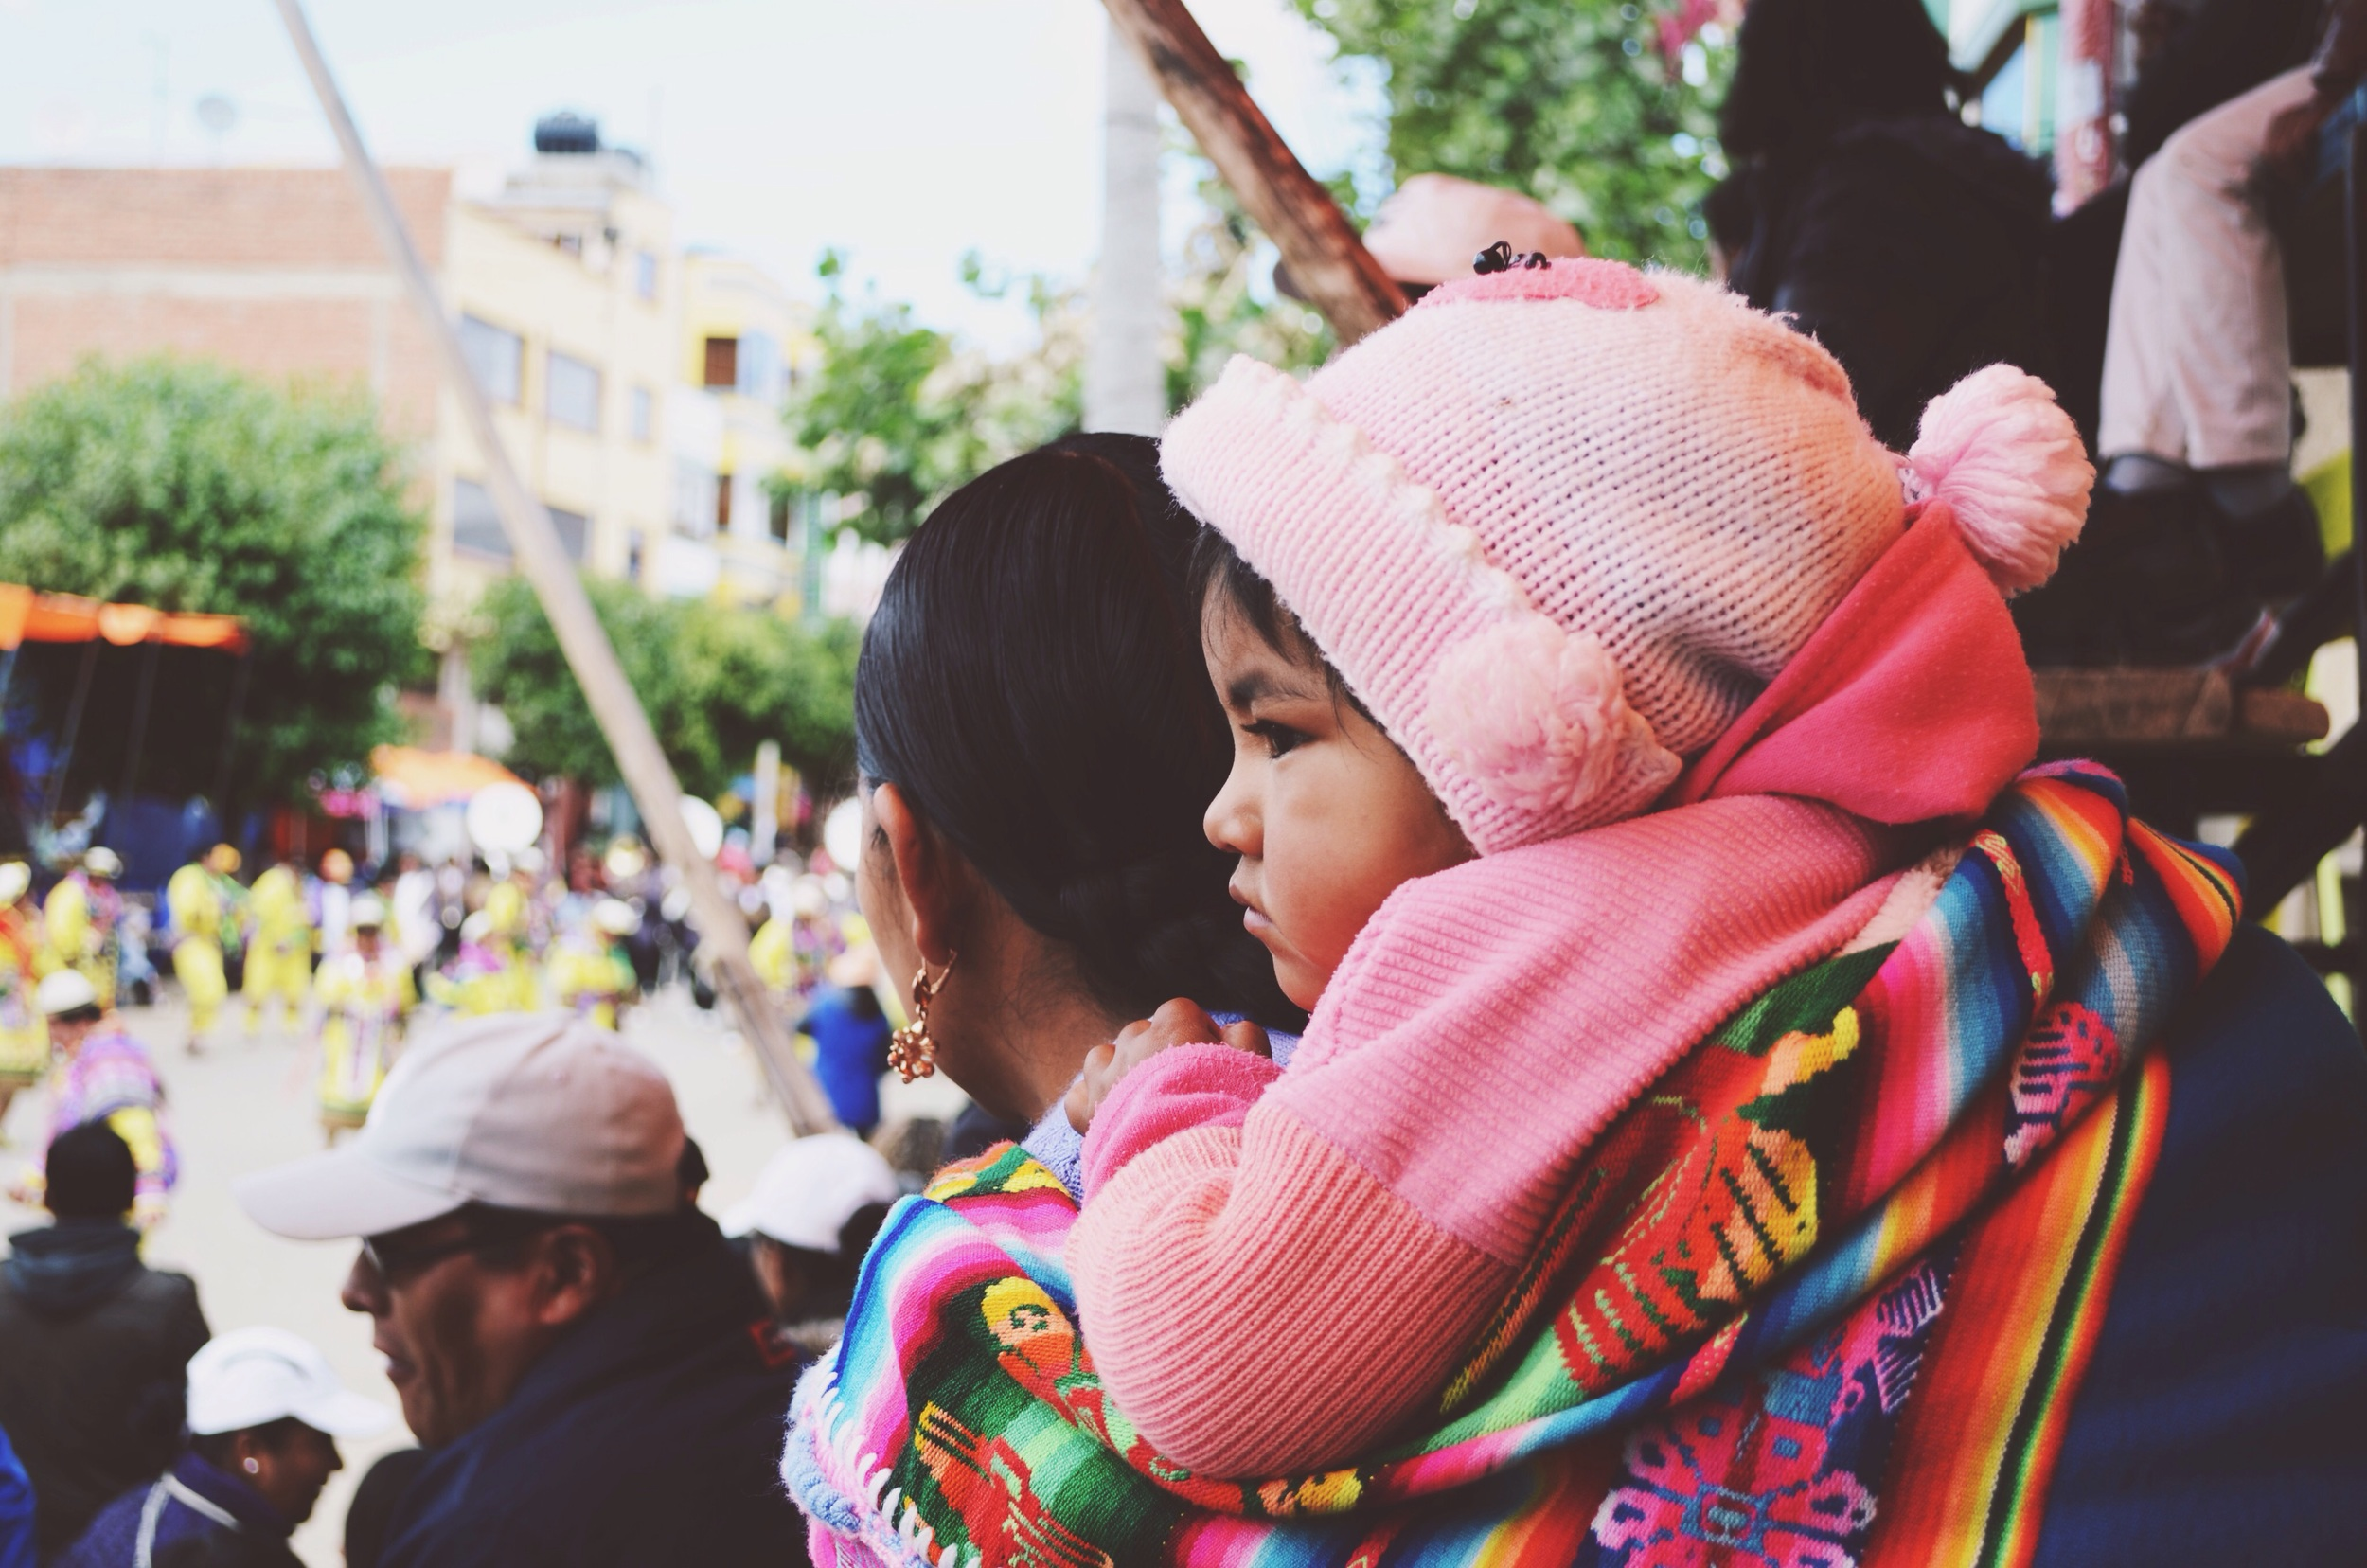 A young spectator bundled up in knits, and carefully bundled to her mother's back // 15 february 2015